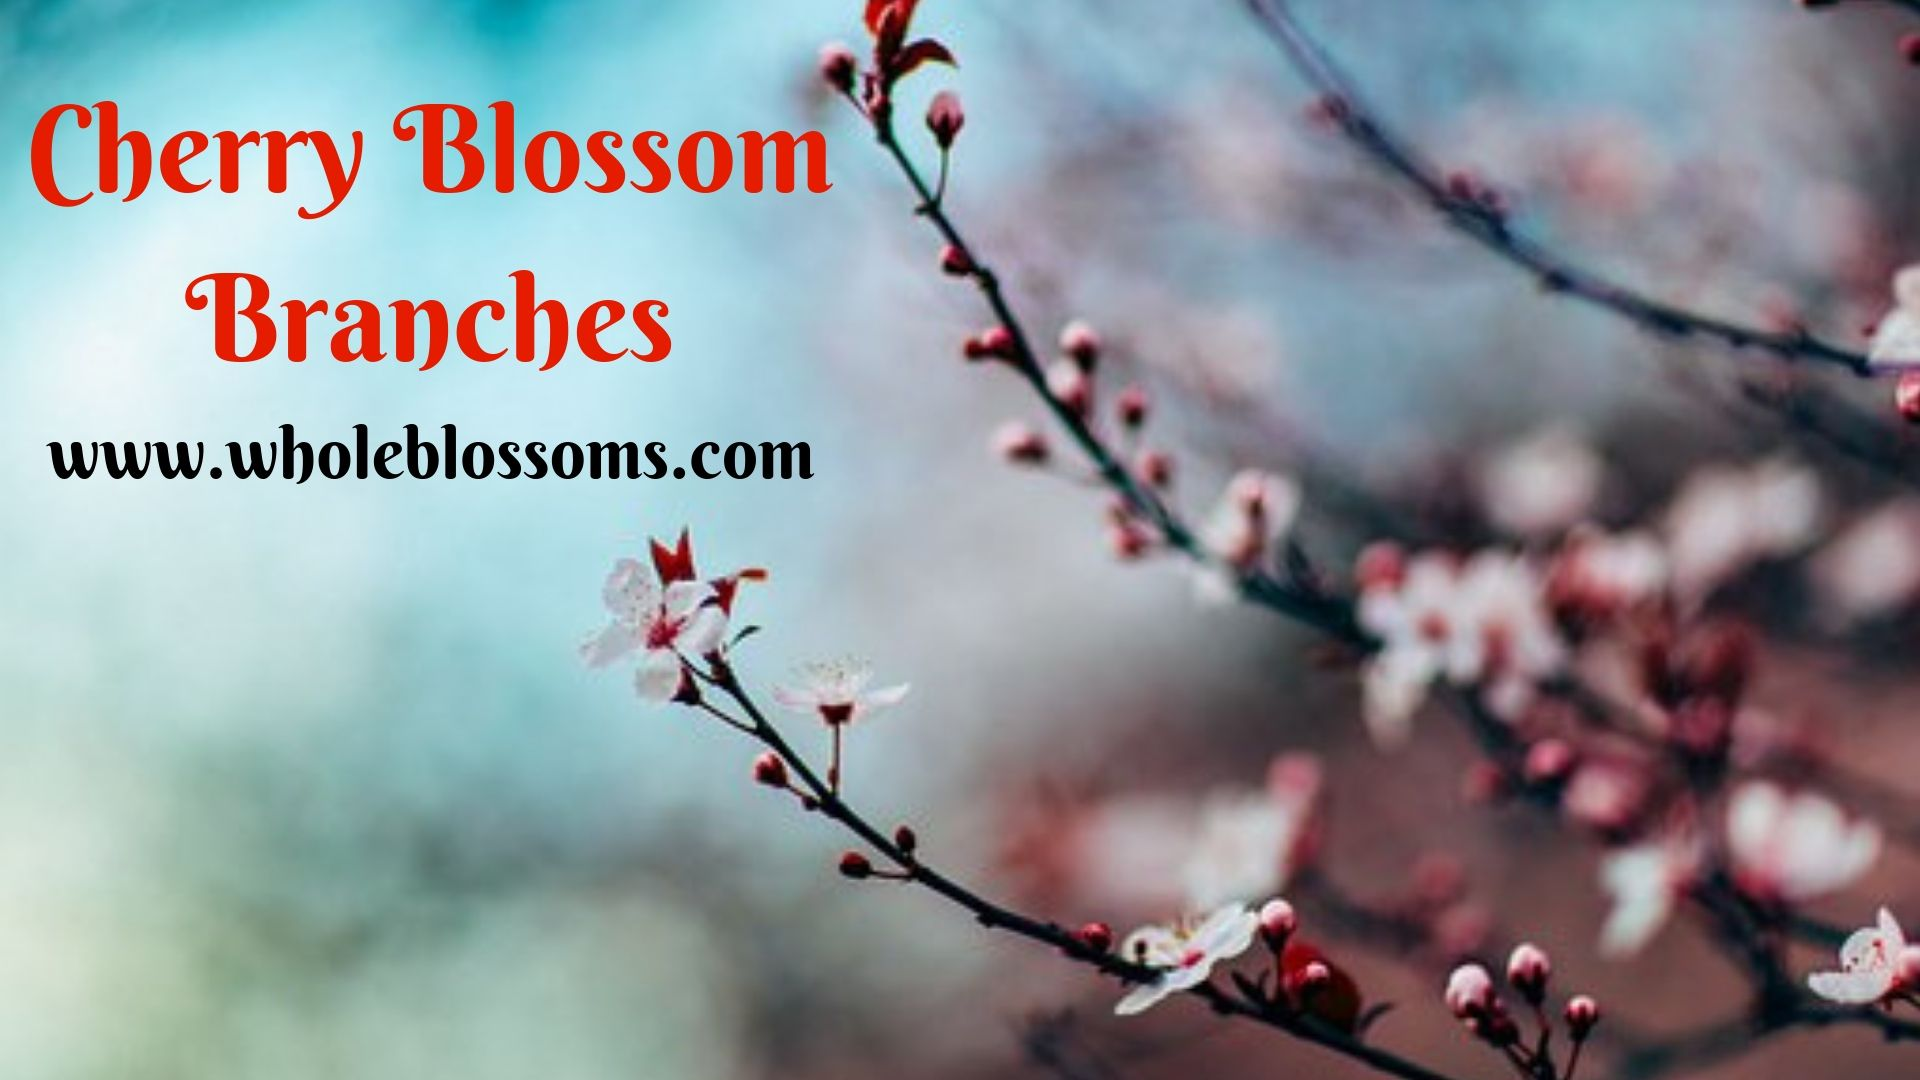 Branches Are Available At Minimum Prices For Distinctive Occasions And Memorable Day They Come In Cherry Blossom How To Memorize Things Cherry Blossom Branch